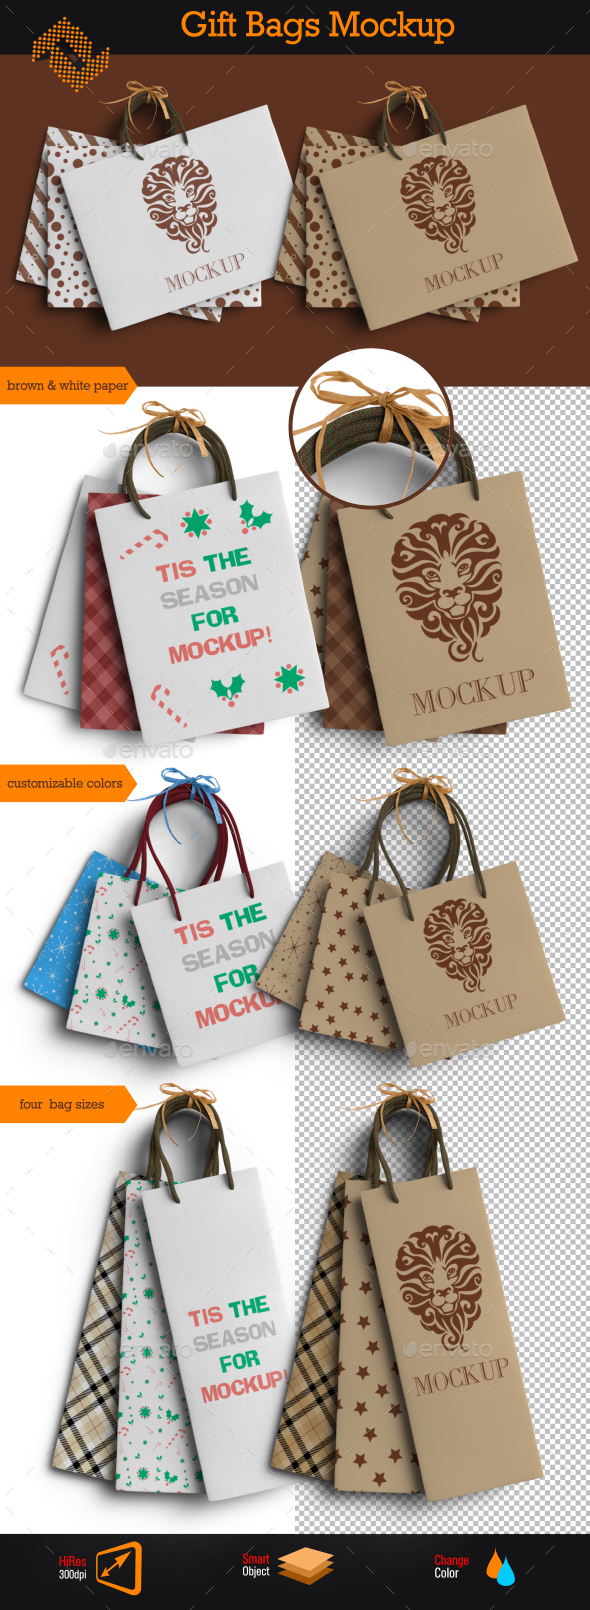 Gift Bags Mockup - Packaging Product Mock-Ups